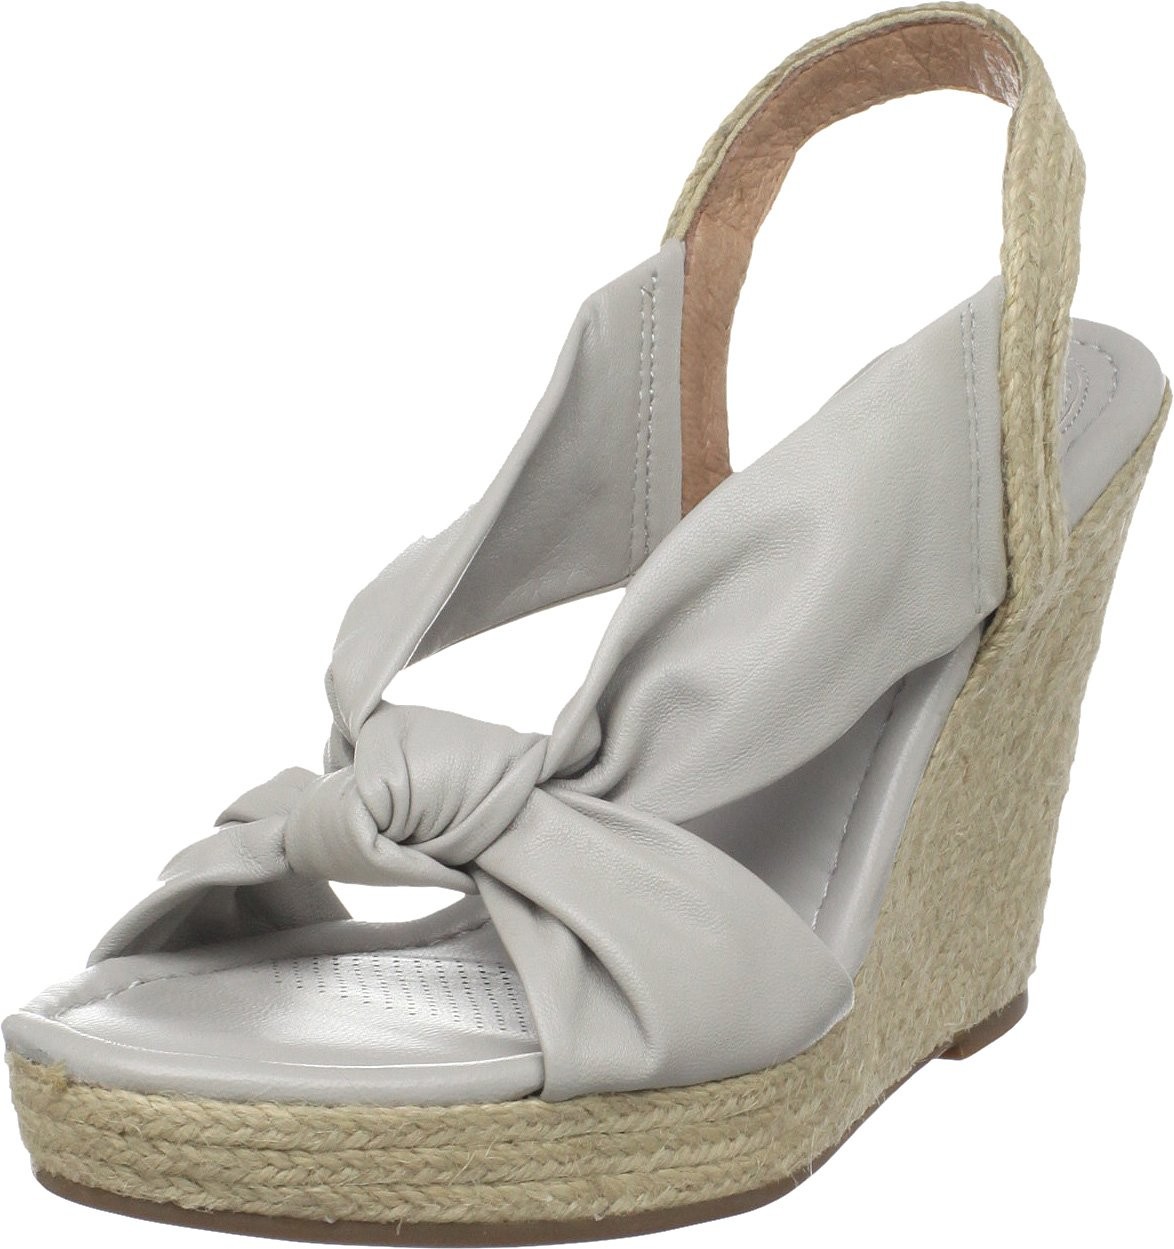 Corso Como Women's Doze Knotted Espadrille B004A8LIGI 6.5 B(M) US|Light Grey